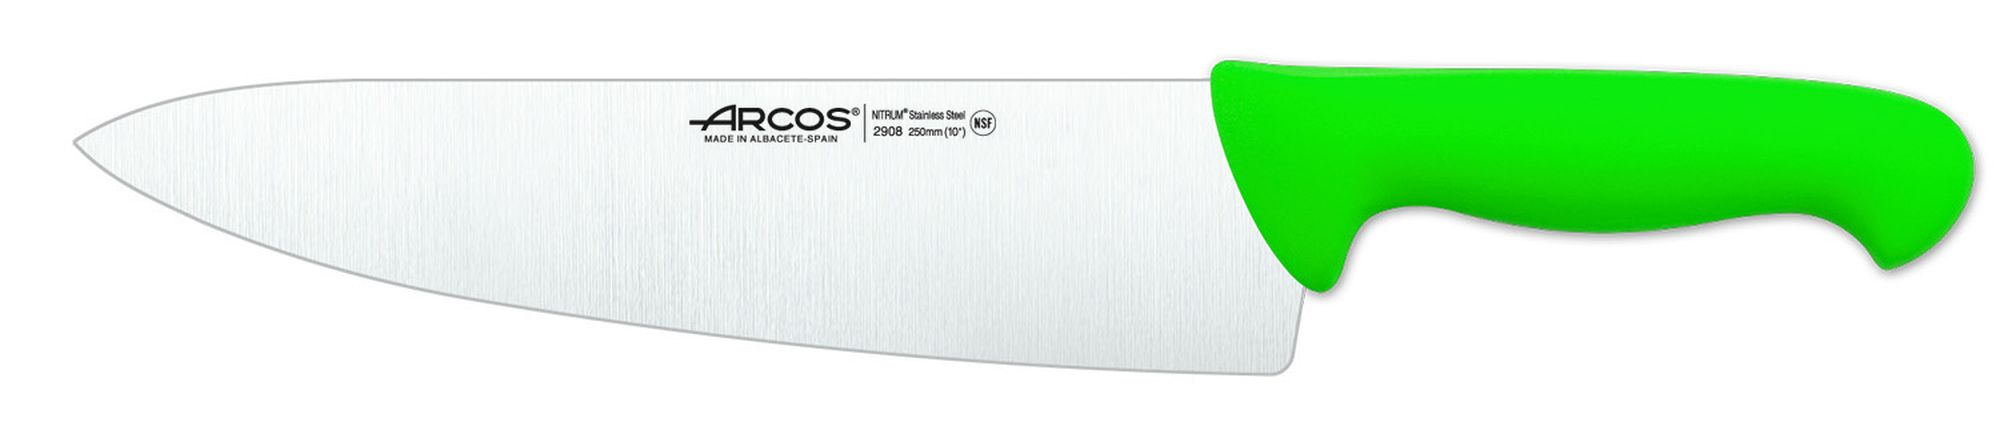 Chef'S Knife Arcos ref.: 290821